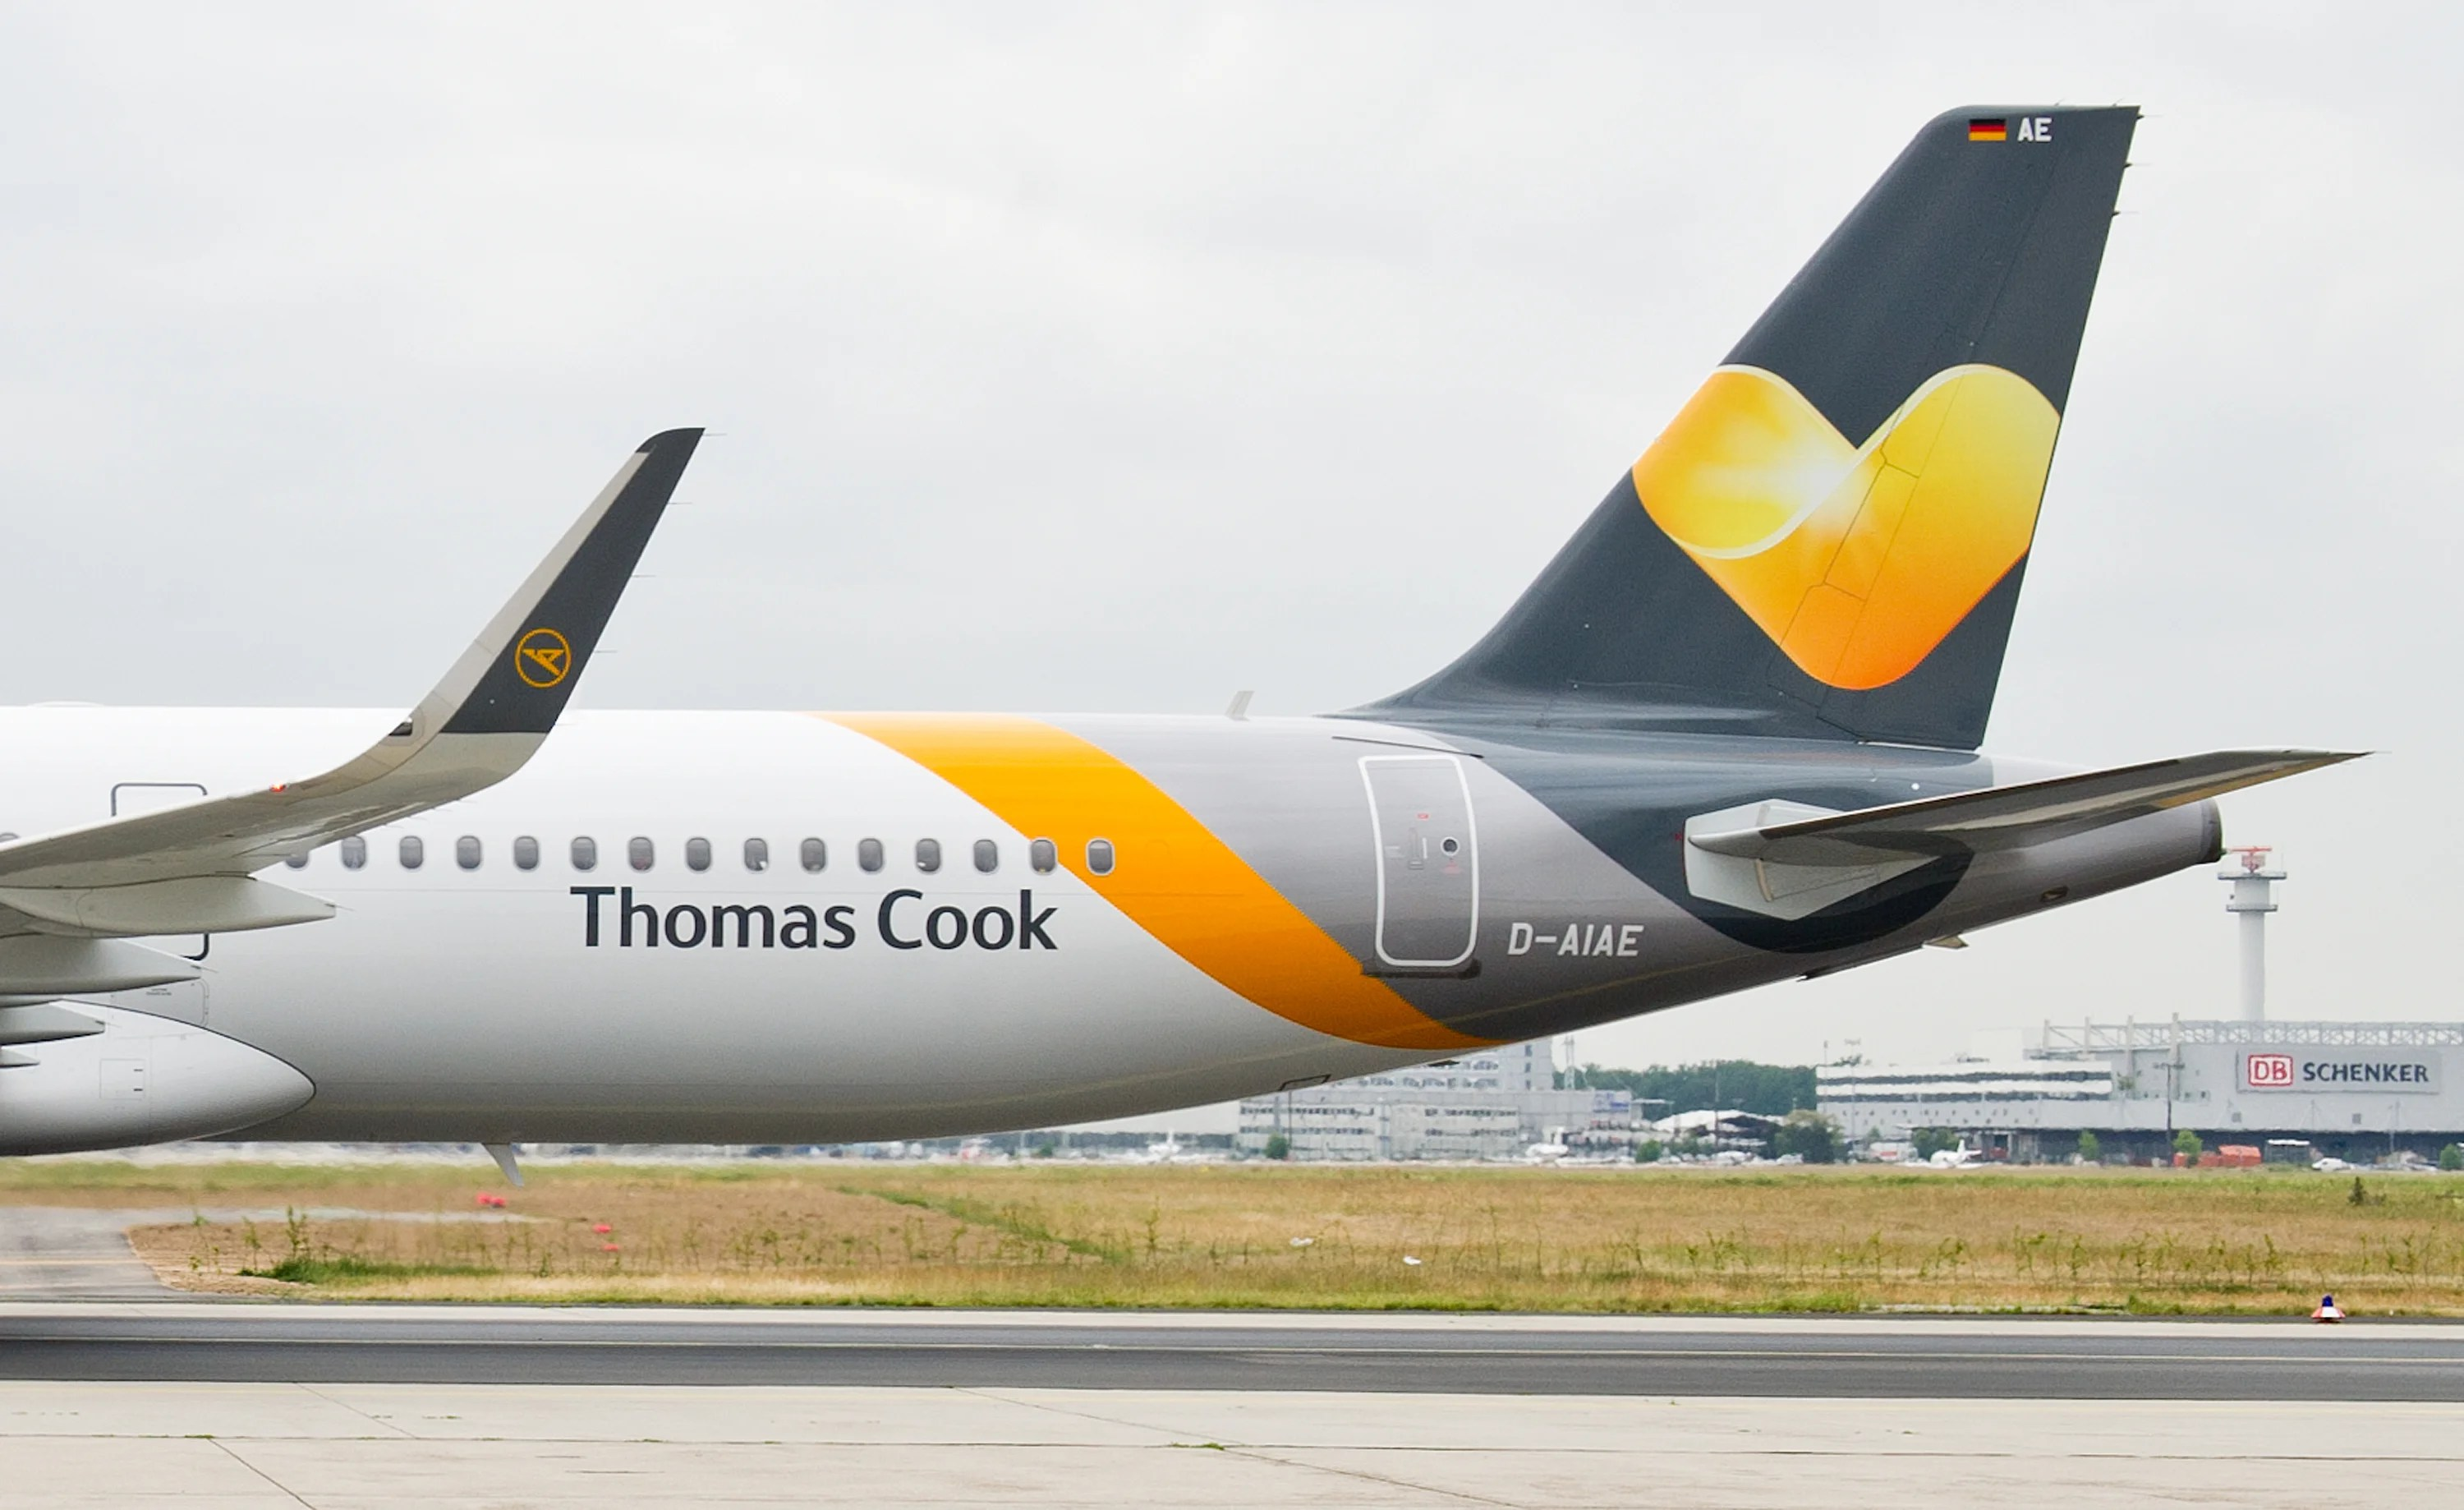 Is Thomas Cook Airline On the Verge Of Collapse?